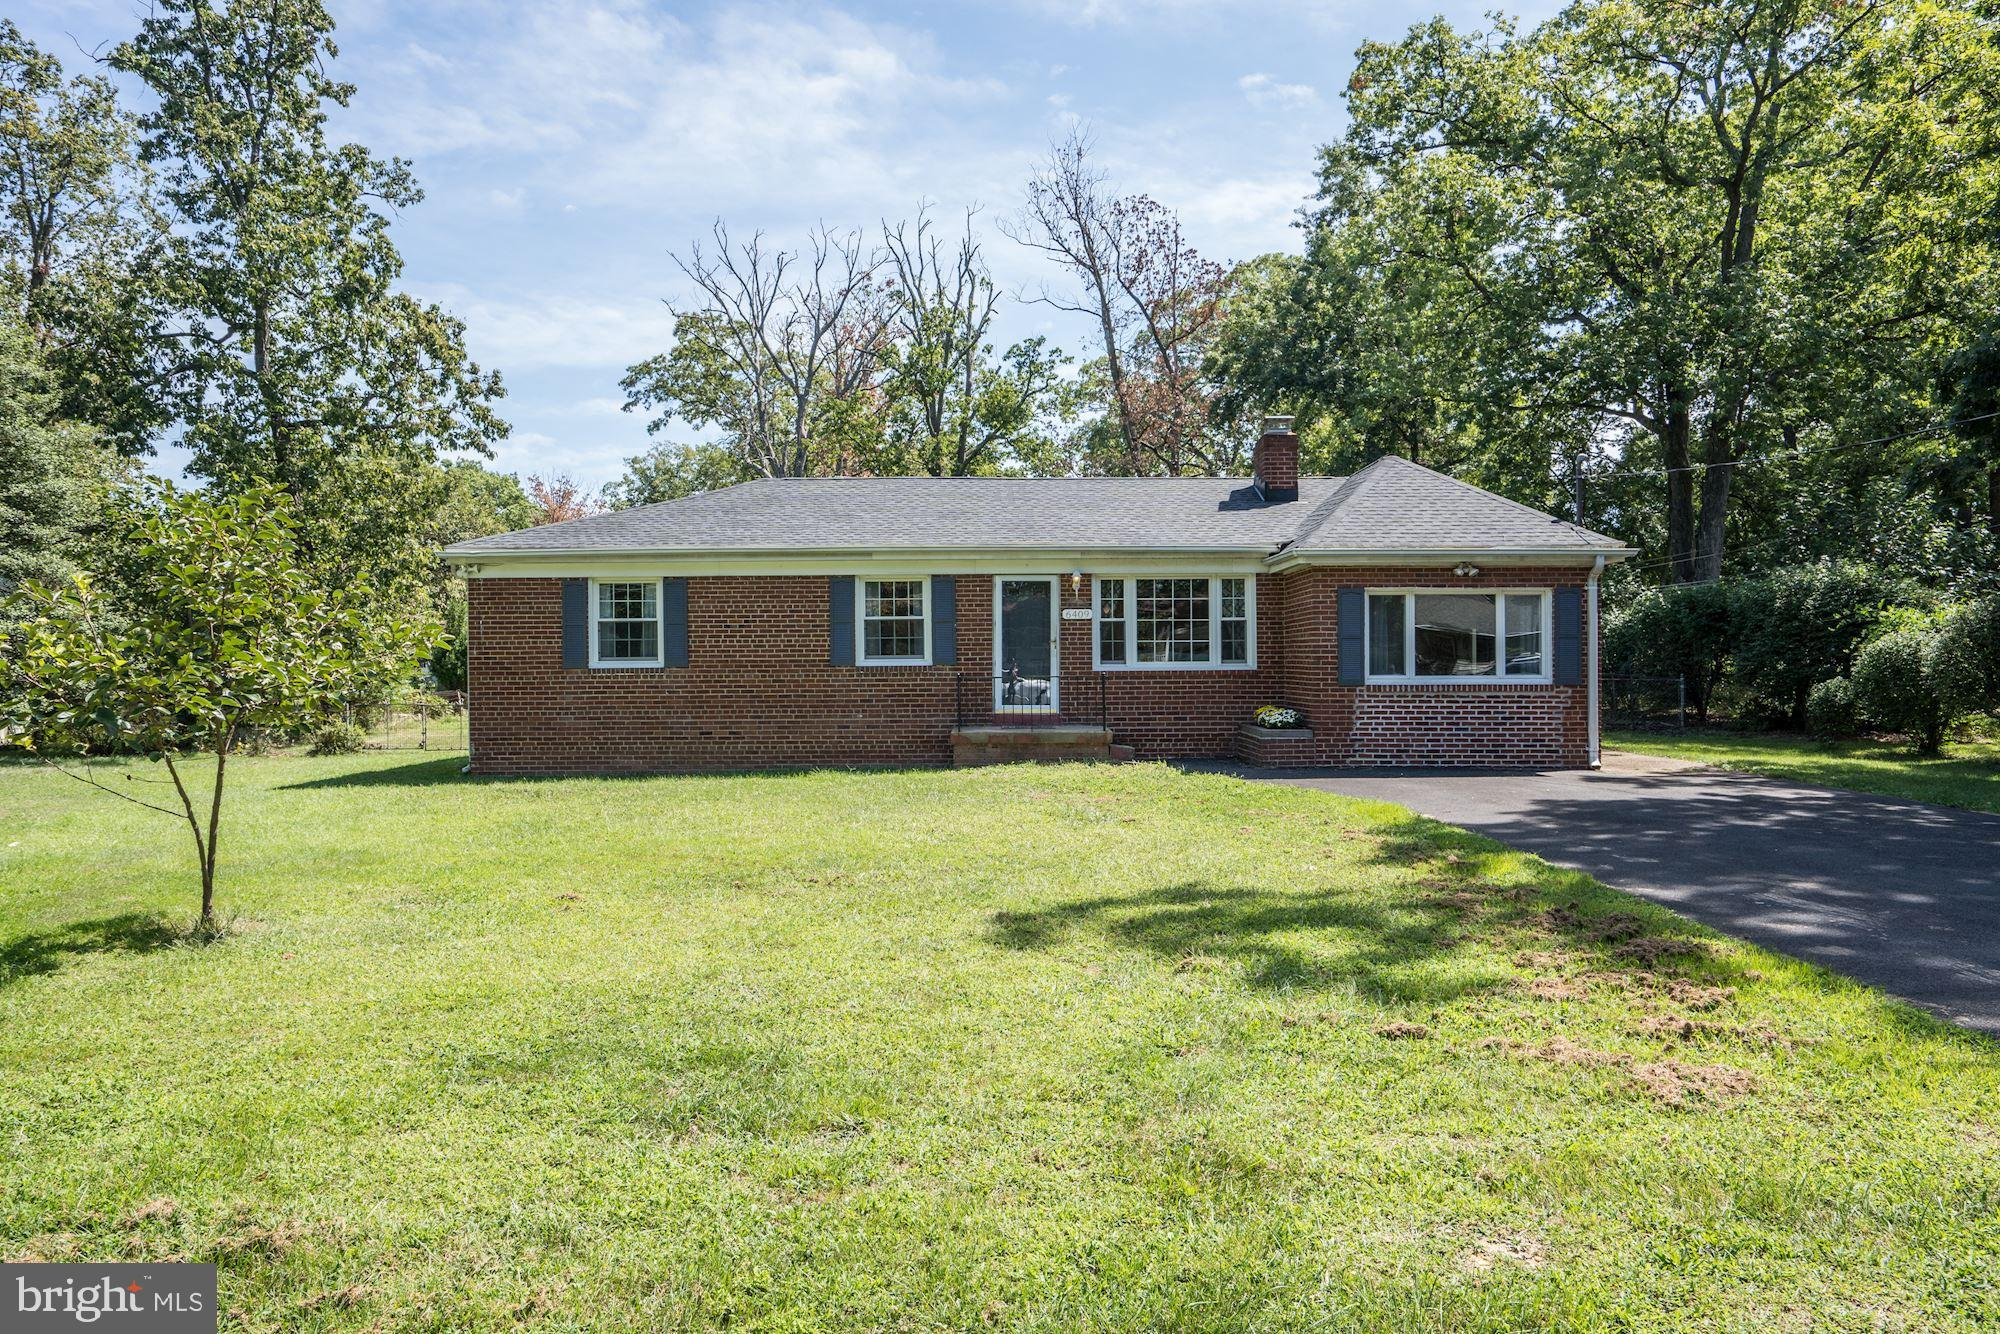 OPEN HOUSE CANCELED - UNDER CONTRACT. Charming 4BR/3BA detached home on HUGE half acre flat lot - no HOA! Beautifully updated throughout with hardwood floors, spacious kitchen, brand new master bathroom (2019), cozy wood-burning fireplace and large recreation room which can be used as an office or fourth bedroom. Open the back door and enjoy peaceful nights in your fully fenced yard or play fetch with your favorite four-legged friend! Upgrades include a recently replaced roof, backyard storage shed, and newly resurfaced driveway which provides plenty of parking. Only one mile to the metro and Springfield Town Center - close to all commuter routes (395, 95 and 495).